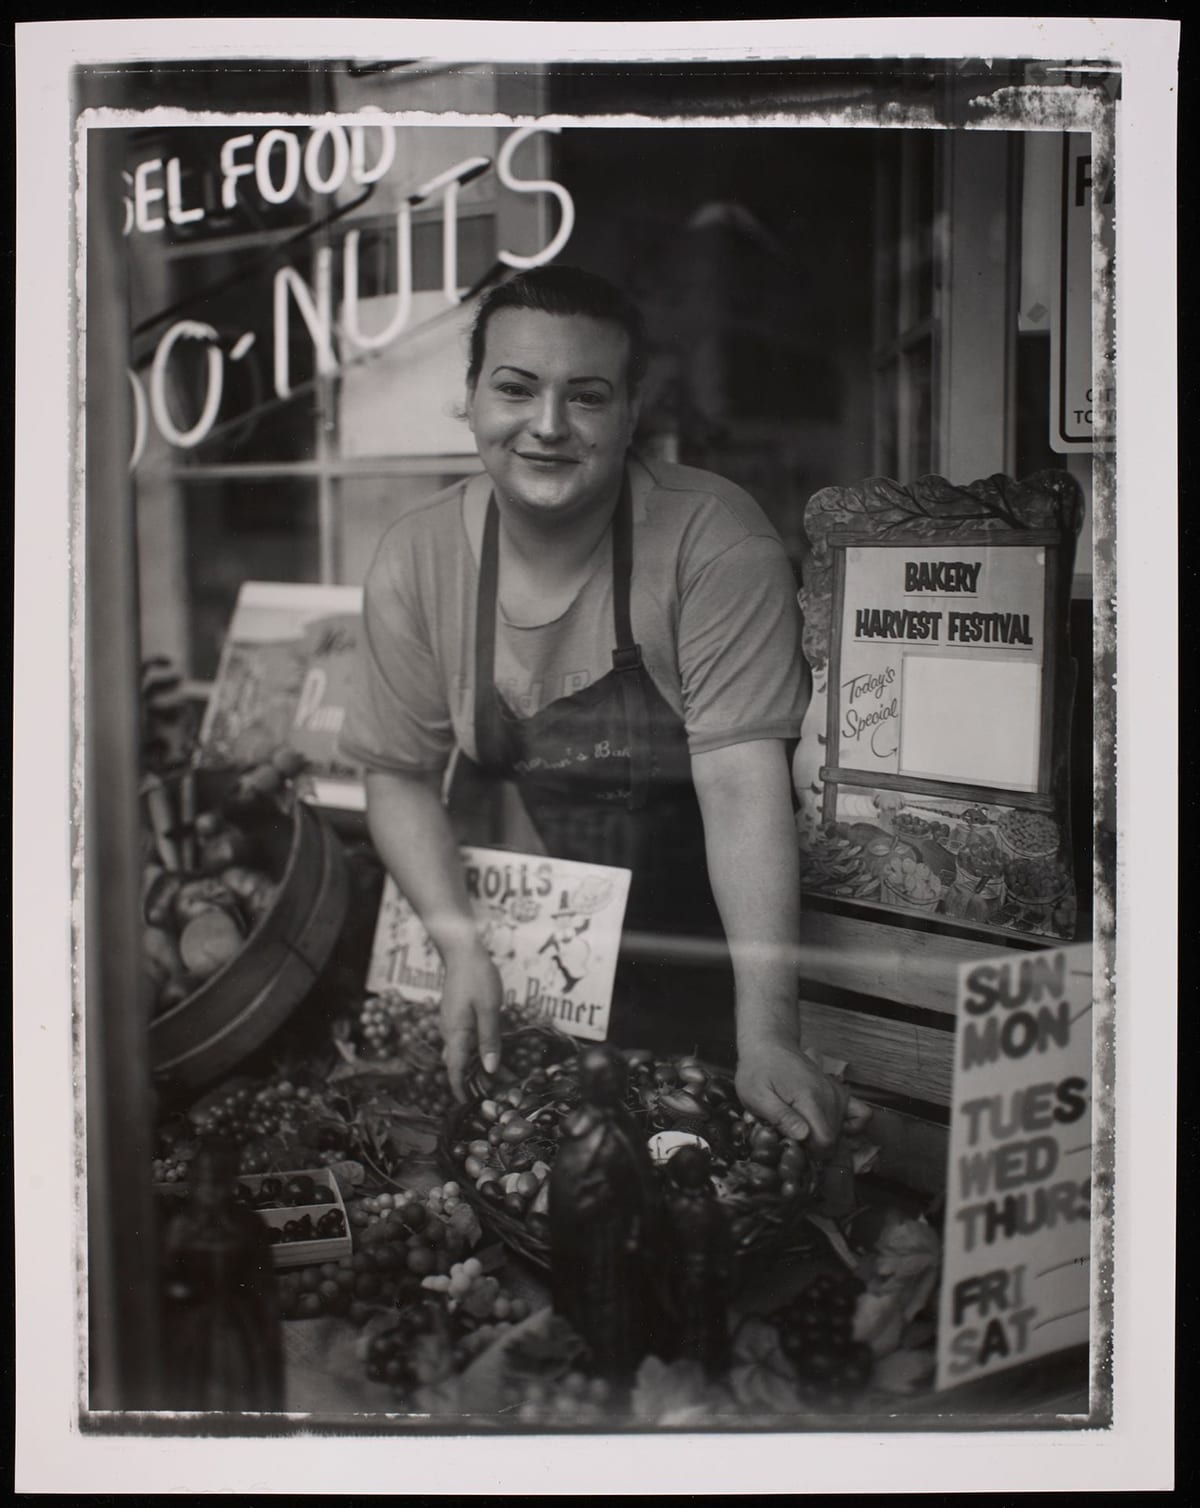 "Kat, from the series North Portland Polaroids, Bobby Abrahamson, gelatin silver print, image: 13 5/16 x 10 1/16 inches; sheet: 14 x 10 15/16 inches. A portrait oriented, black and white photograph of an individual seen through a storefront window arranging produce and smiling directly at the viewer. Their dark hair is pulled back, and they have dark arched eyebrows, a dimple on their right cheek and a beauty spot on their left above their mouth. Their smile is warm and welcoming. They wear a short-sleeved t-shirt under a dark apron. Their hands reach down in front of them to arrange a large bowl of olives amid bunches of grapes, small boxes of cherries and other kinds of produce. The figure is flanked by small store signs. One elaborately framed one to the left reads ""Bakery Harvest Festival"", to their right is an out of focus sign in the background and one is directly in front of the figure and advertises ""Rolls"" and ""Thanksgiving Dinner"". At top left a neon sign is partially seen. It reads ""…El Food"" and ""…O-Nuts"". Across the lower section of the photo, a horizontal streak of white is visible, possibly a light reflection on the store window. Behind the figure are elements of the shop: a paned glass window and doorway. A narrow uneven white line along the outer edge of the photo frames the scene."